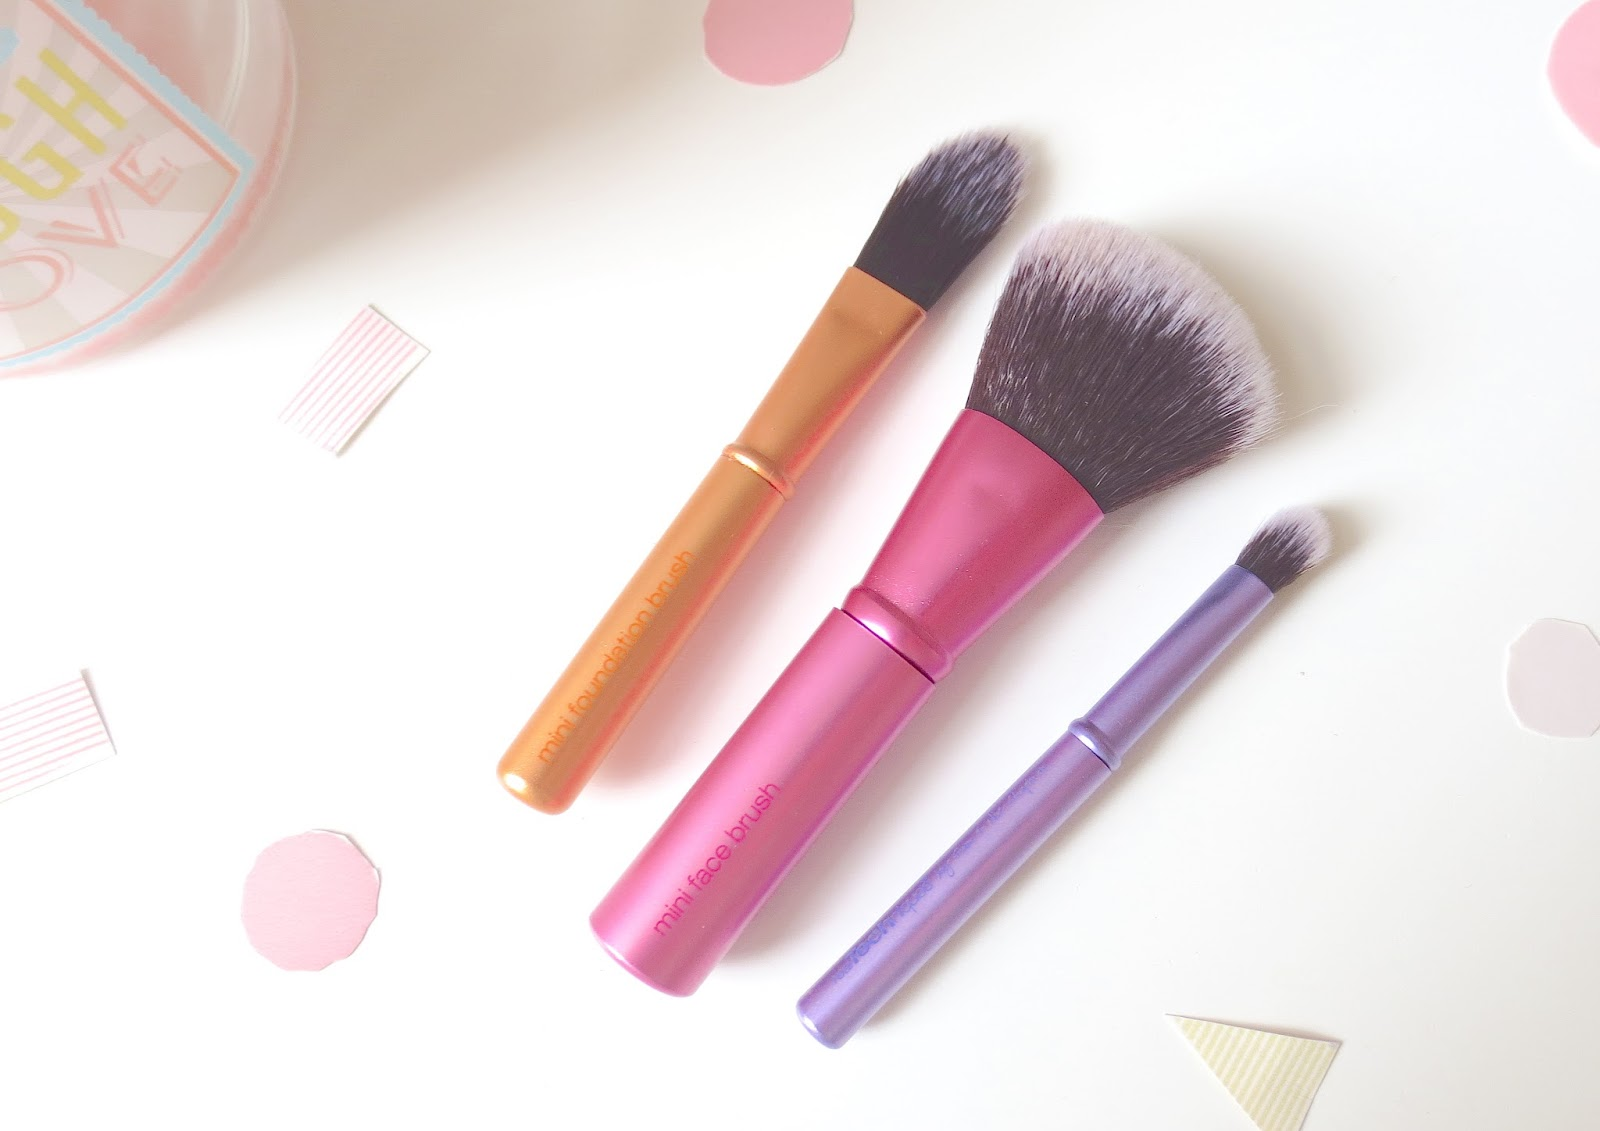 real techniques mini brush trio face brush travel blending eyeshadow lip make up makeup stippling brush blog review sam chapman